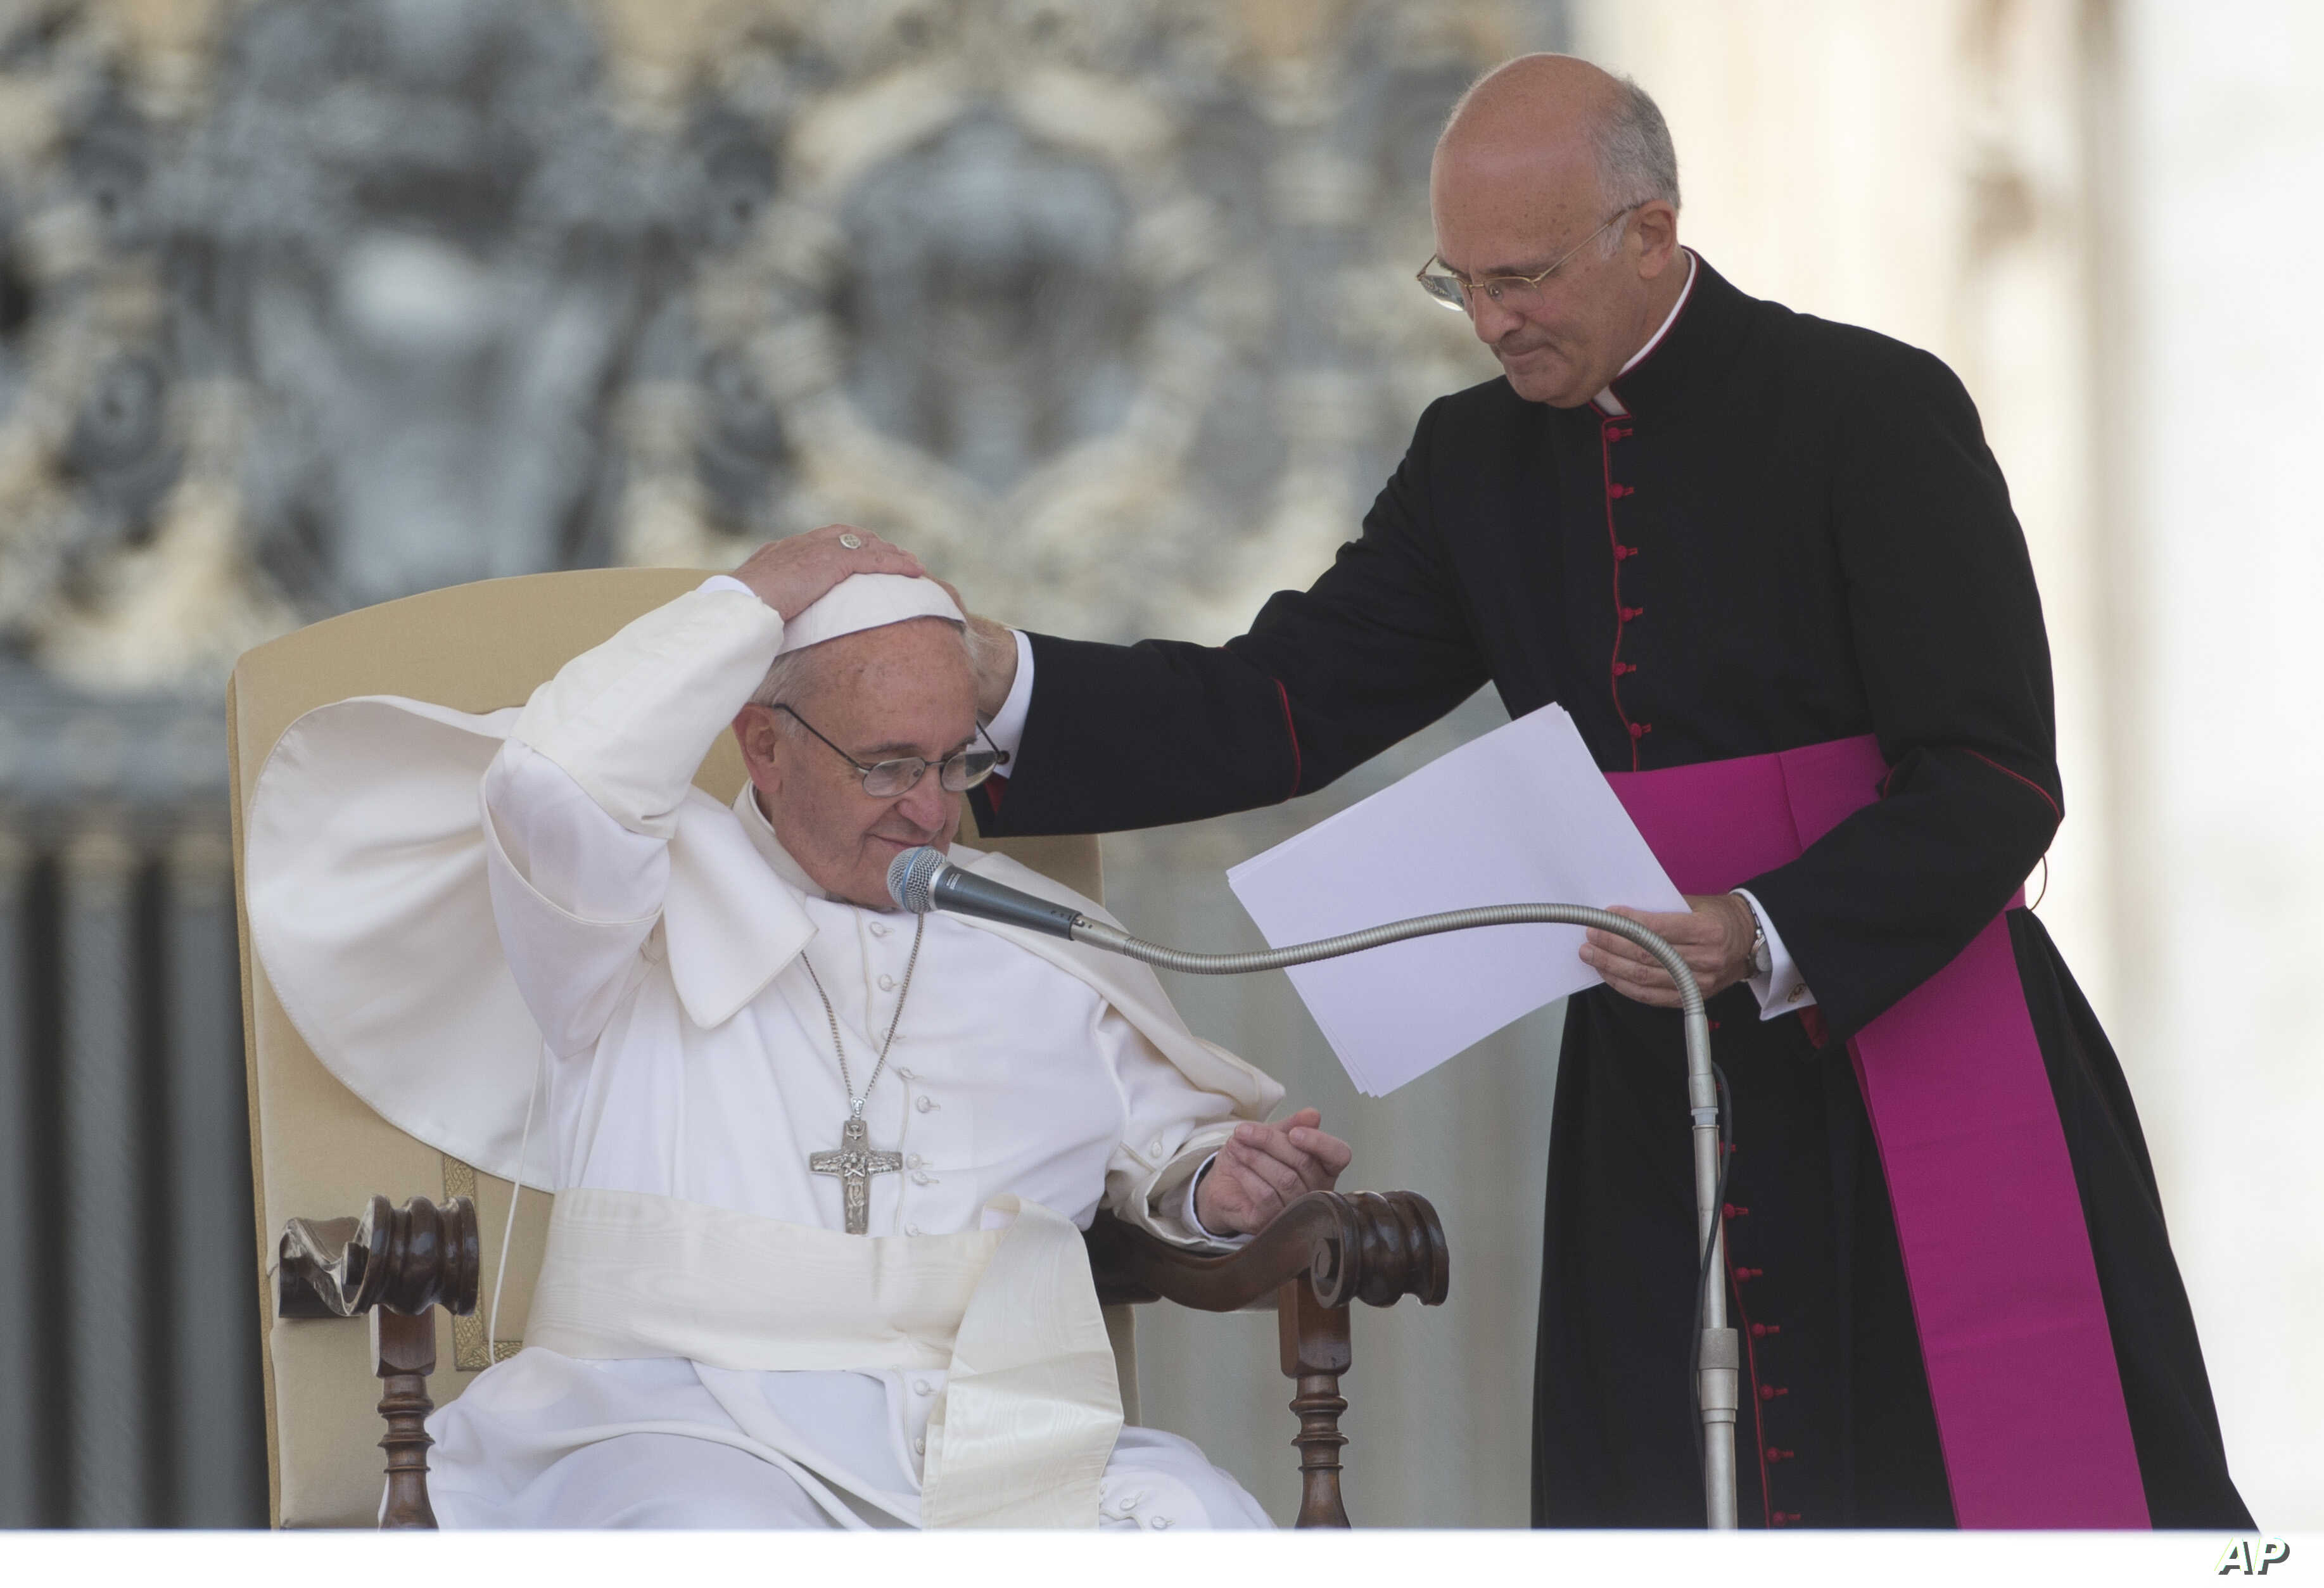 Pope Francis is helped by his personal secretary Mons. Alfred Xuereb, right, with his skull cap during a gust of wind while he attends his weekly open-air general audience in St. Peter's Square at the Vatican, Wednesday, May 22, 2013.